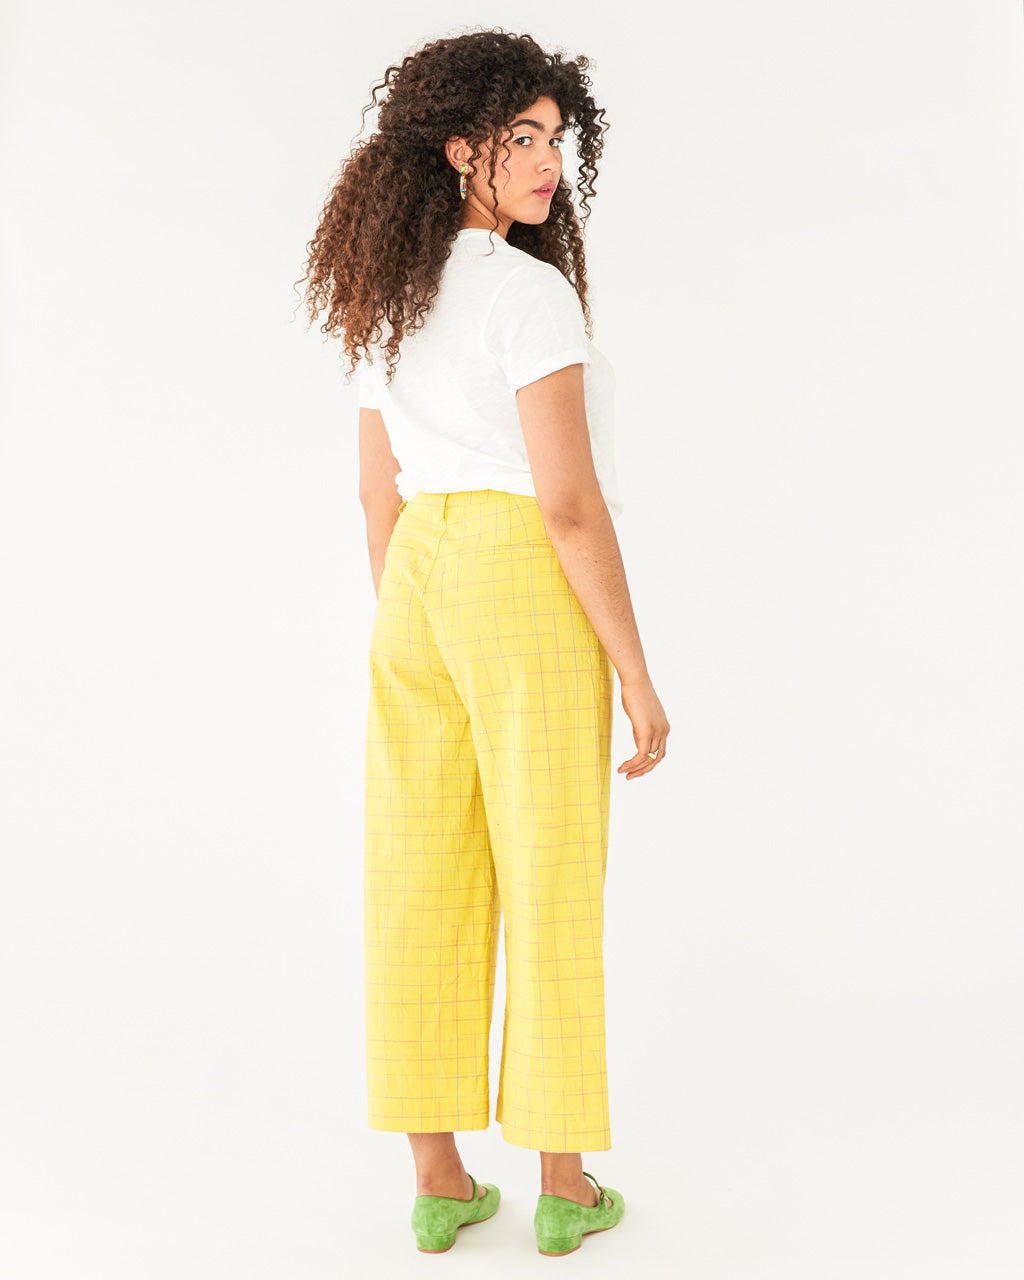 back shot of model wearing yellow ankle length pants paired with a white tee and green shoes